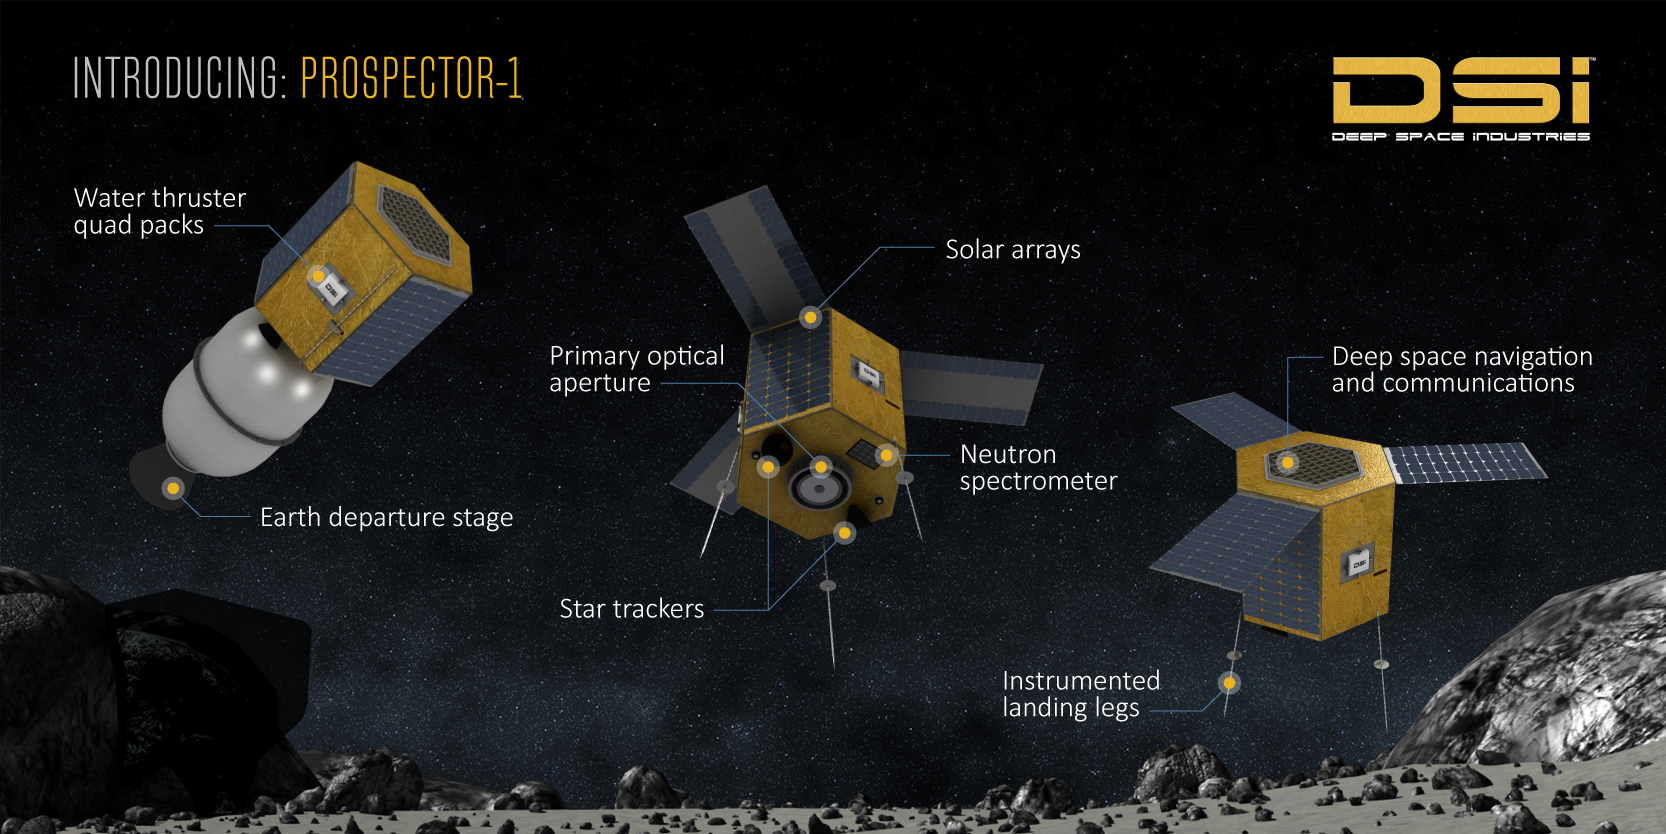 The First Commercial Asteroid Mining Could Start In Just Three Years